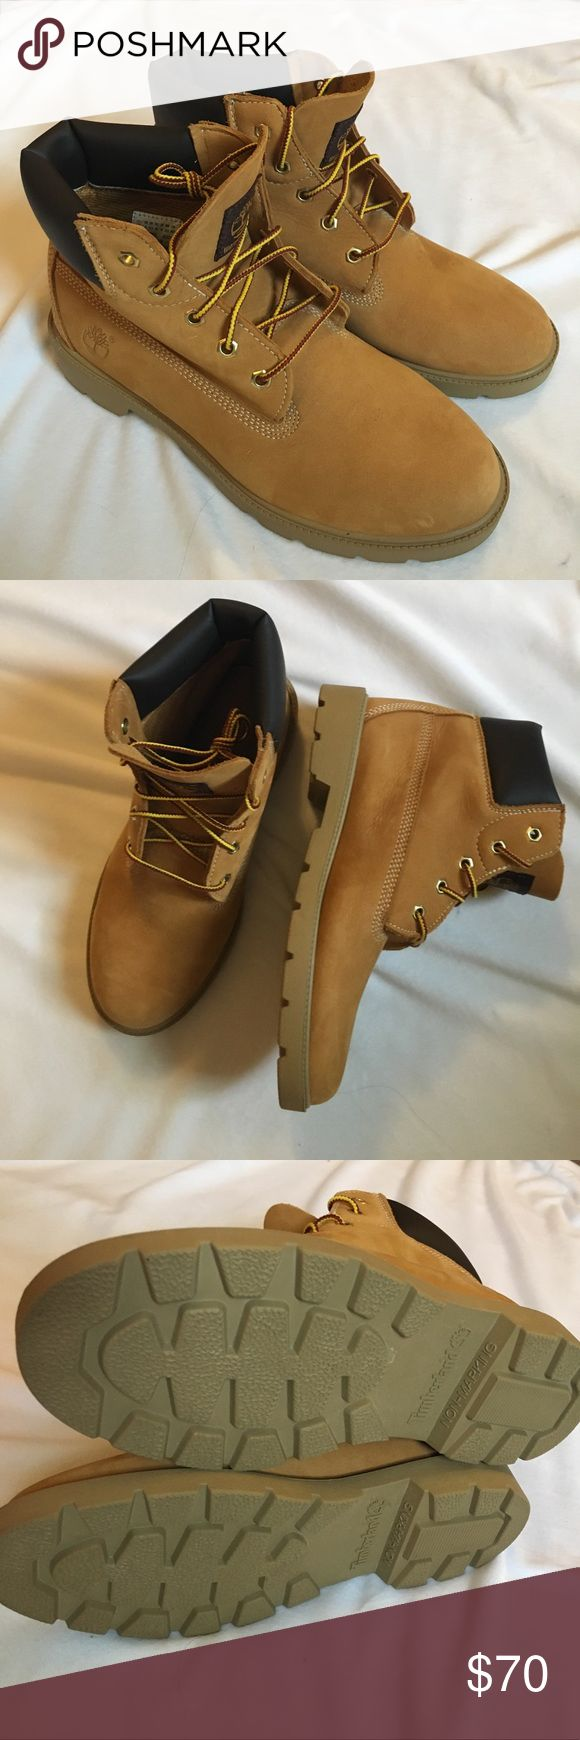 New Size 6 Youth Timberland Waterproof Boots Brand New Timberland Boots. They are a youth size 6 (Size 8 Women's and Size 6.5 Men's). These are waterproof and have never been worn. Perfect for all seasons!! Very open to offers!!!!! Timberland Shoes Boots